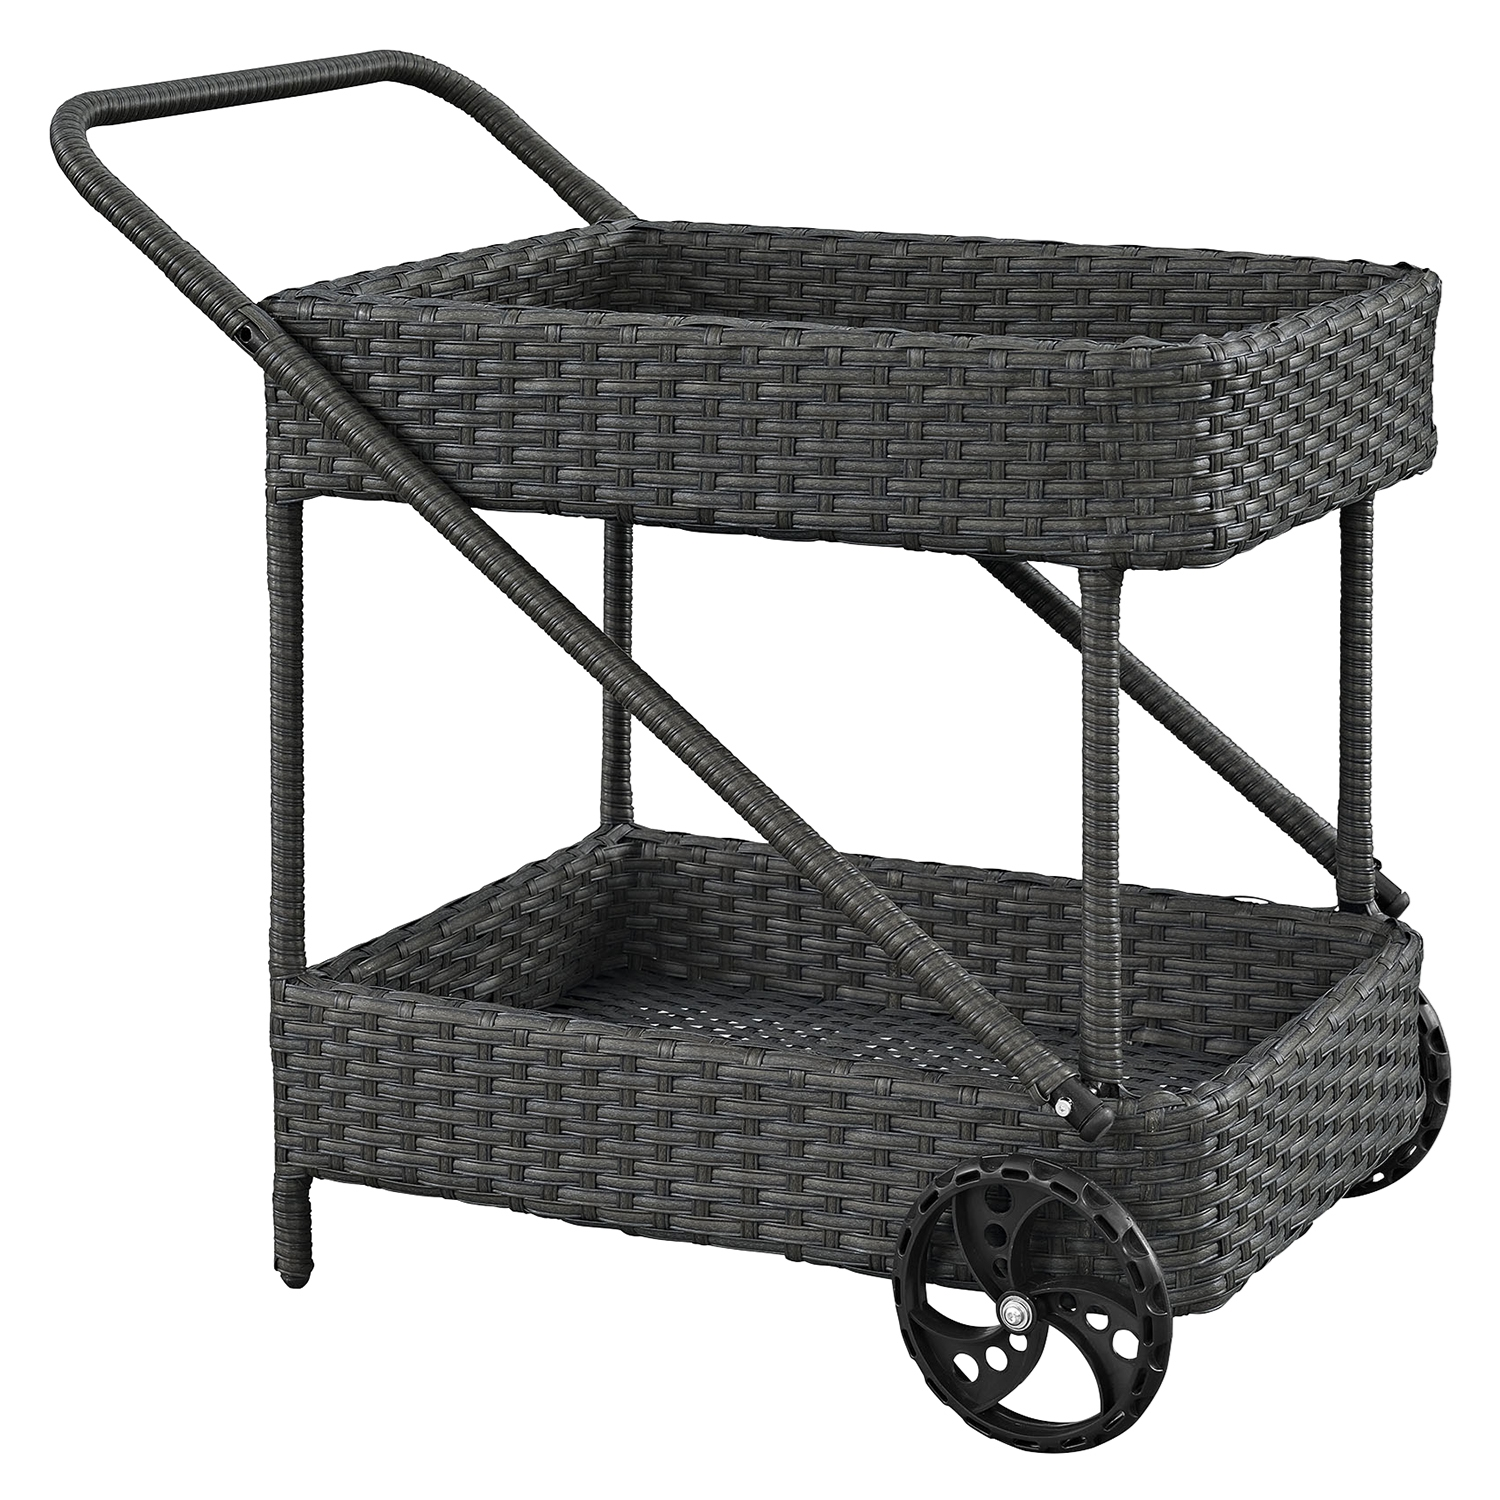 Sojourn Outdoor Patio Beverage Cart - Chocolate - EEI-1979-CHC